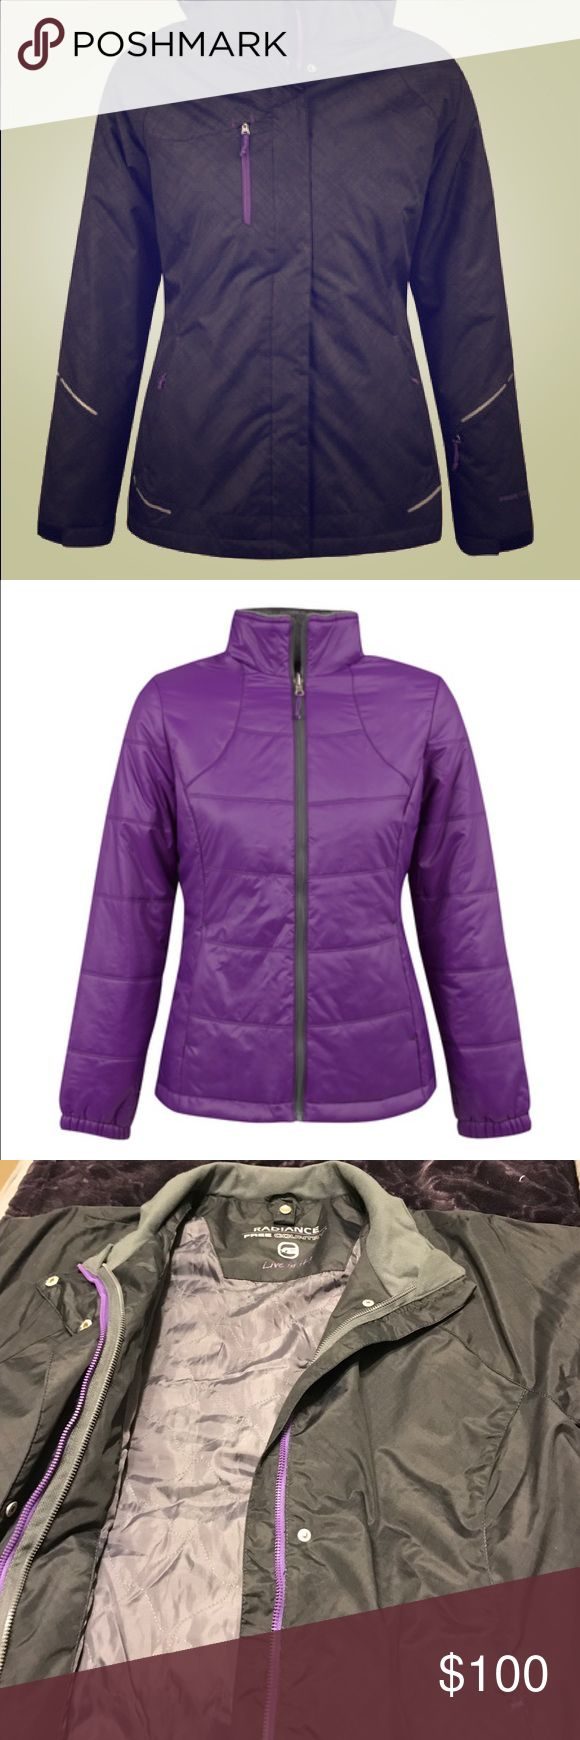 "Free Country ""Ibis"" Plus Size 3-in-1 Ski Jacket Free Country ""Ibis"" Plus Size 3-in-1 Ski Jacket. Black outer shell with purple fleece lined zip-in liner. This can be found on their website still. Size is 1X. Black and purple coloring. Fleece inside purple shell is a dark grey color. Warm, breathable and perfect for cold weather! Can wear the outer shell alone, the purple liner alone, or zip them together to stay extra warm! Only worn one time! Note: this does NOT come with the hood. Free…"